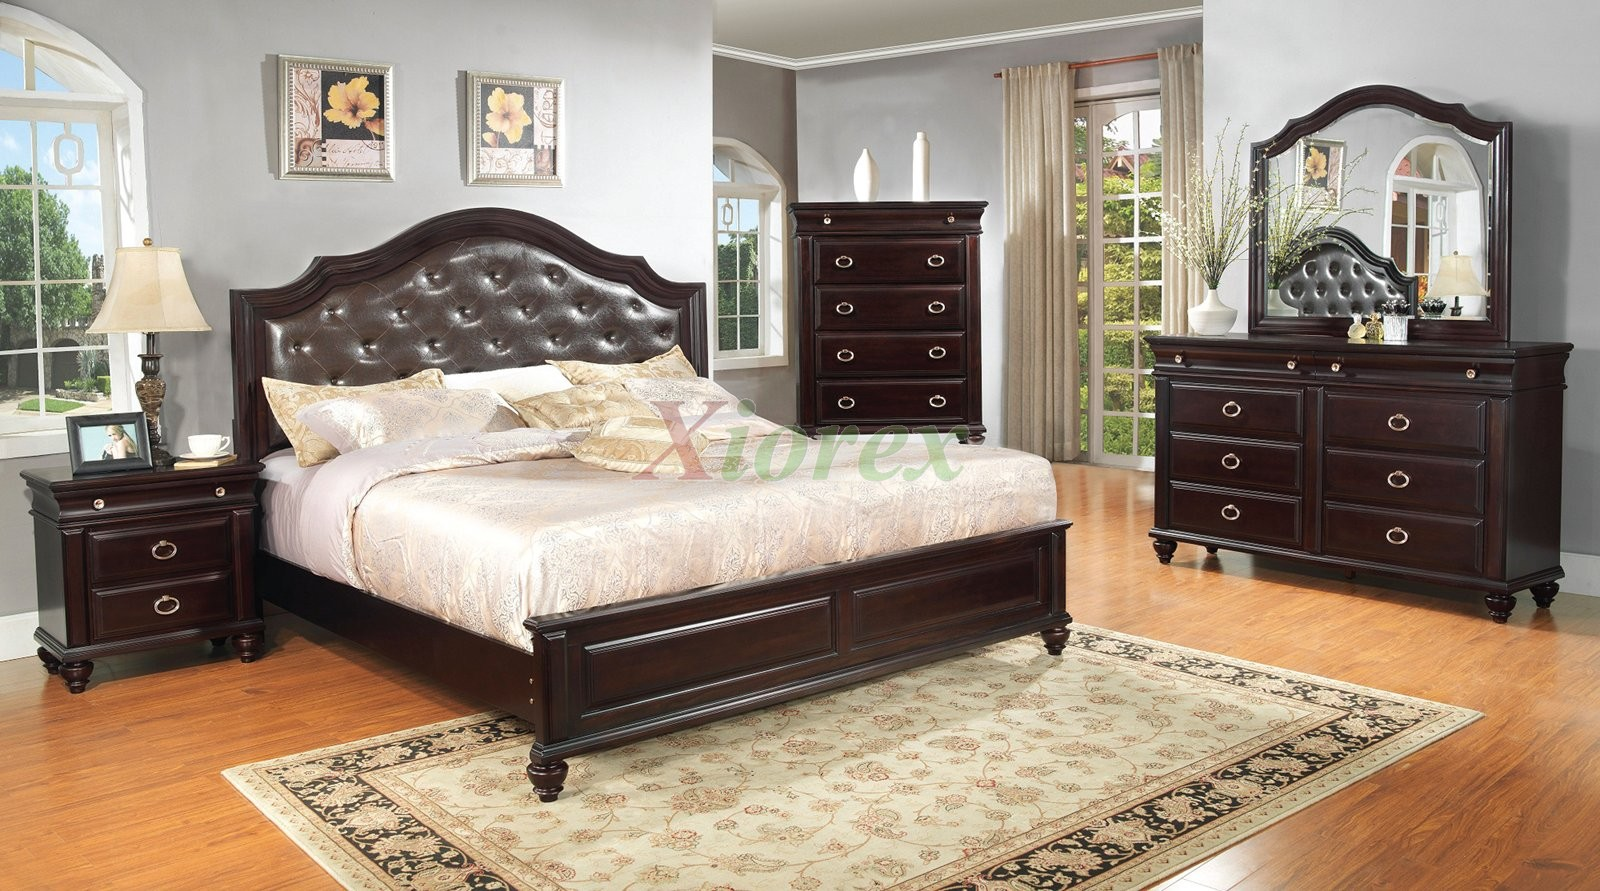 leather bedroom set platform bedroom furniture set with leather headboard 146 12067